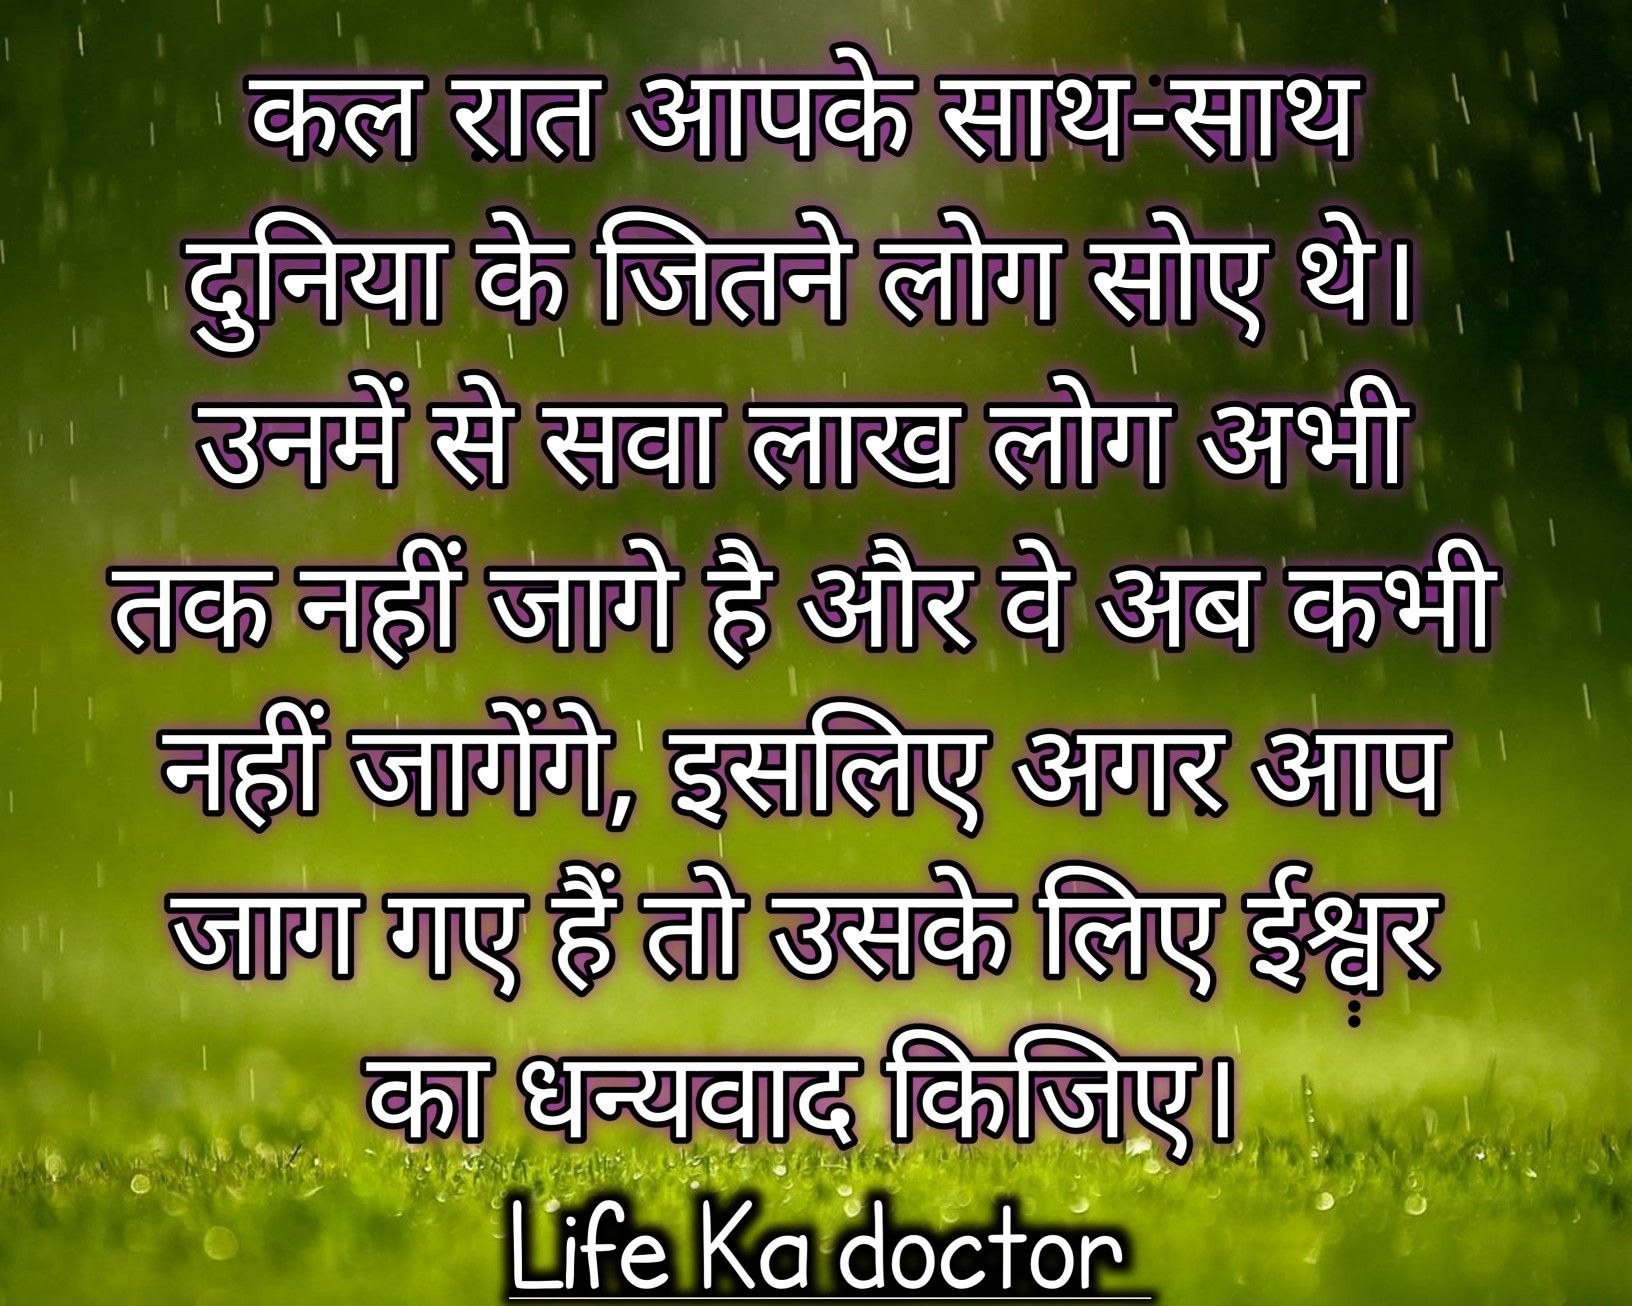 Motivational Quotes Motivational Quotes In Hindi Motivational Quotes Motivational Quotes For Success